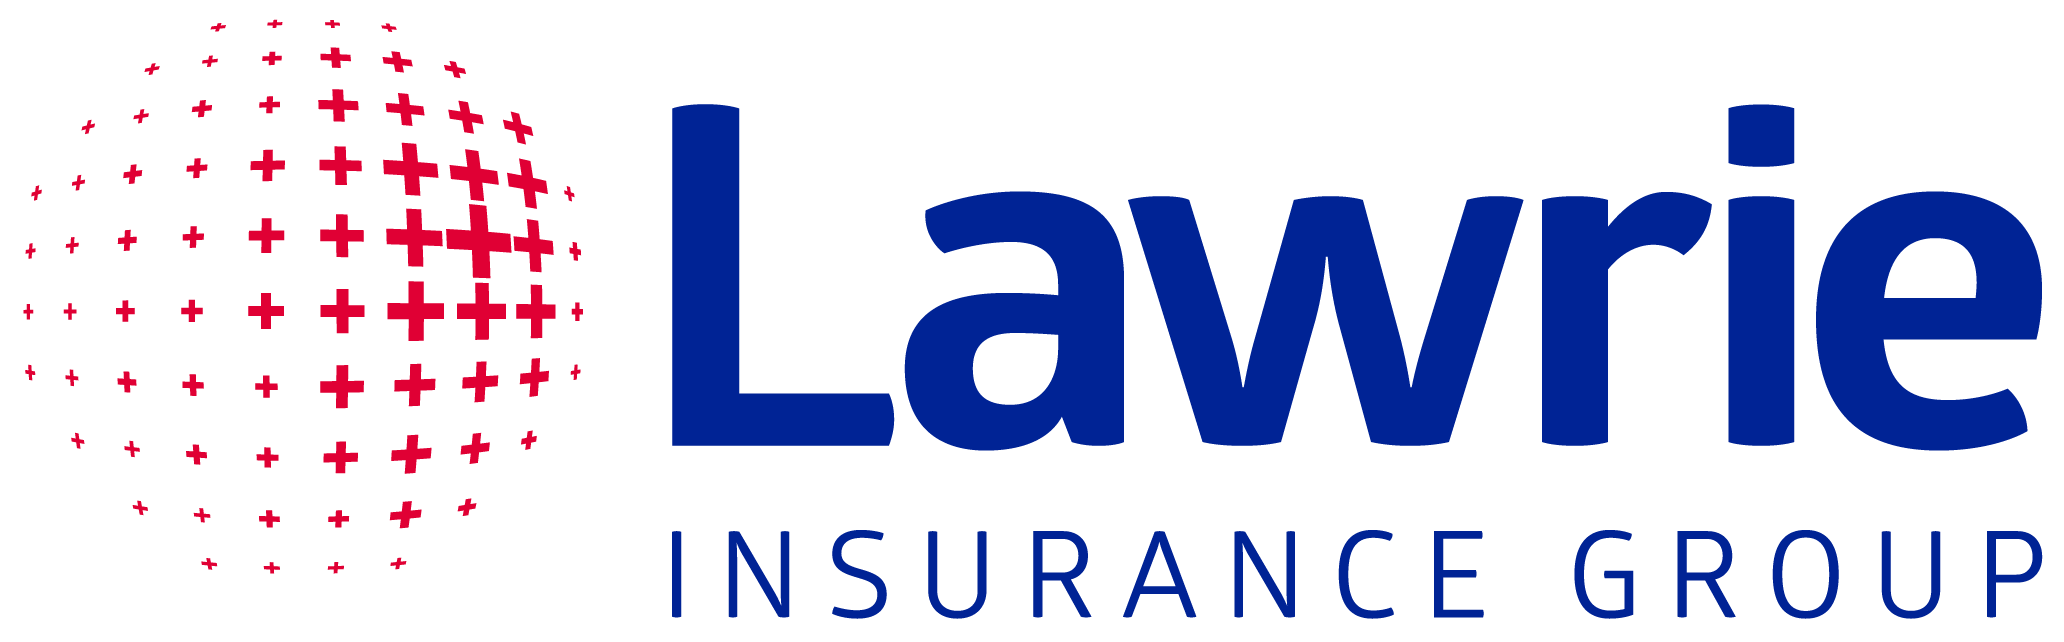 Lawrie Insurance Group Announces Complete Rebrand and New Website Launch